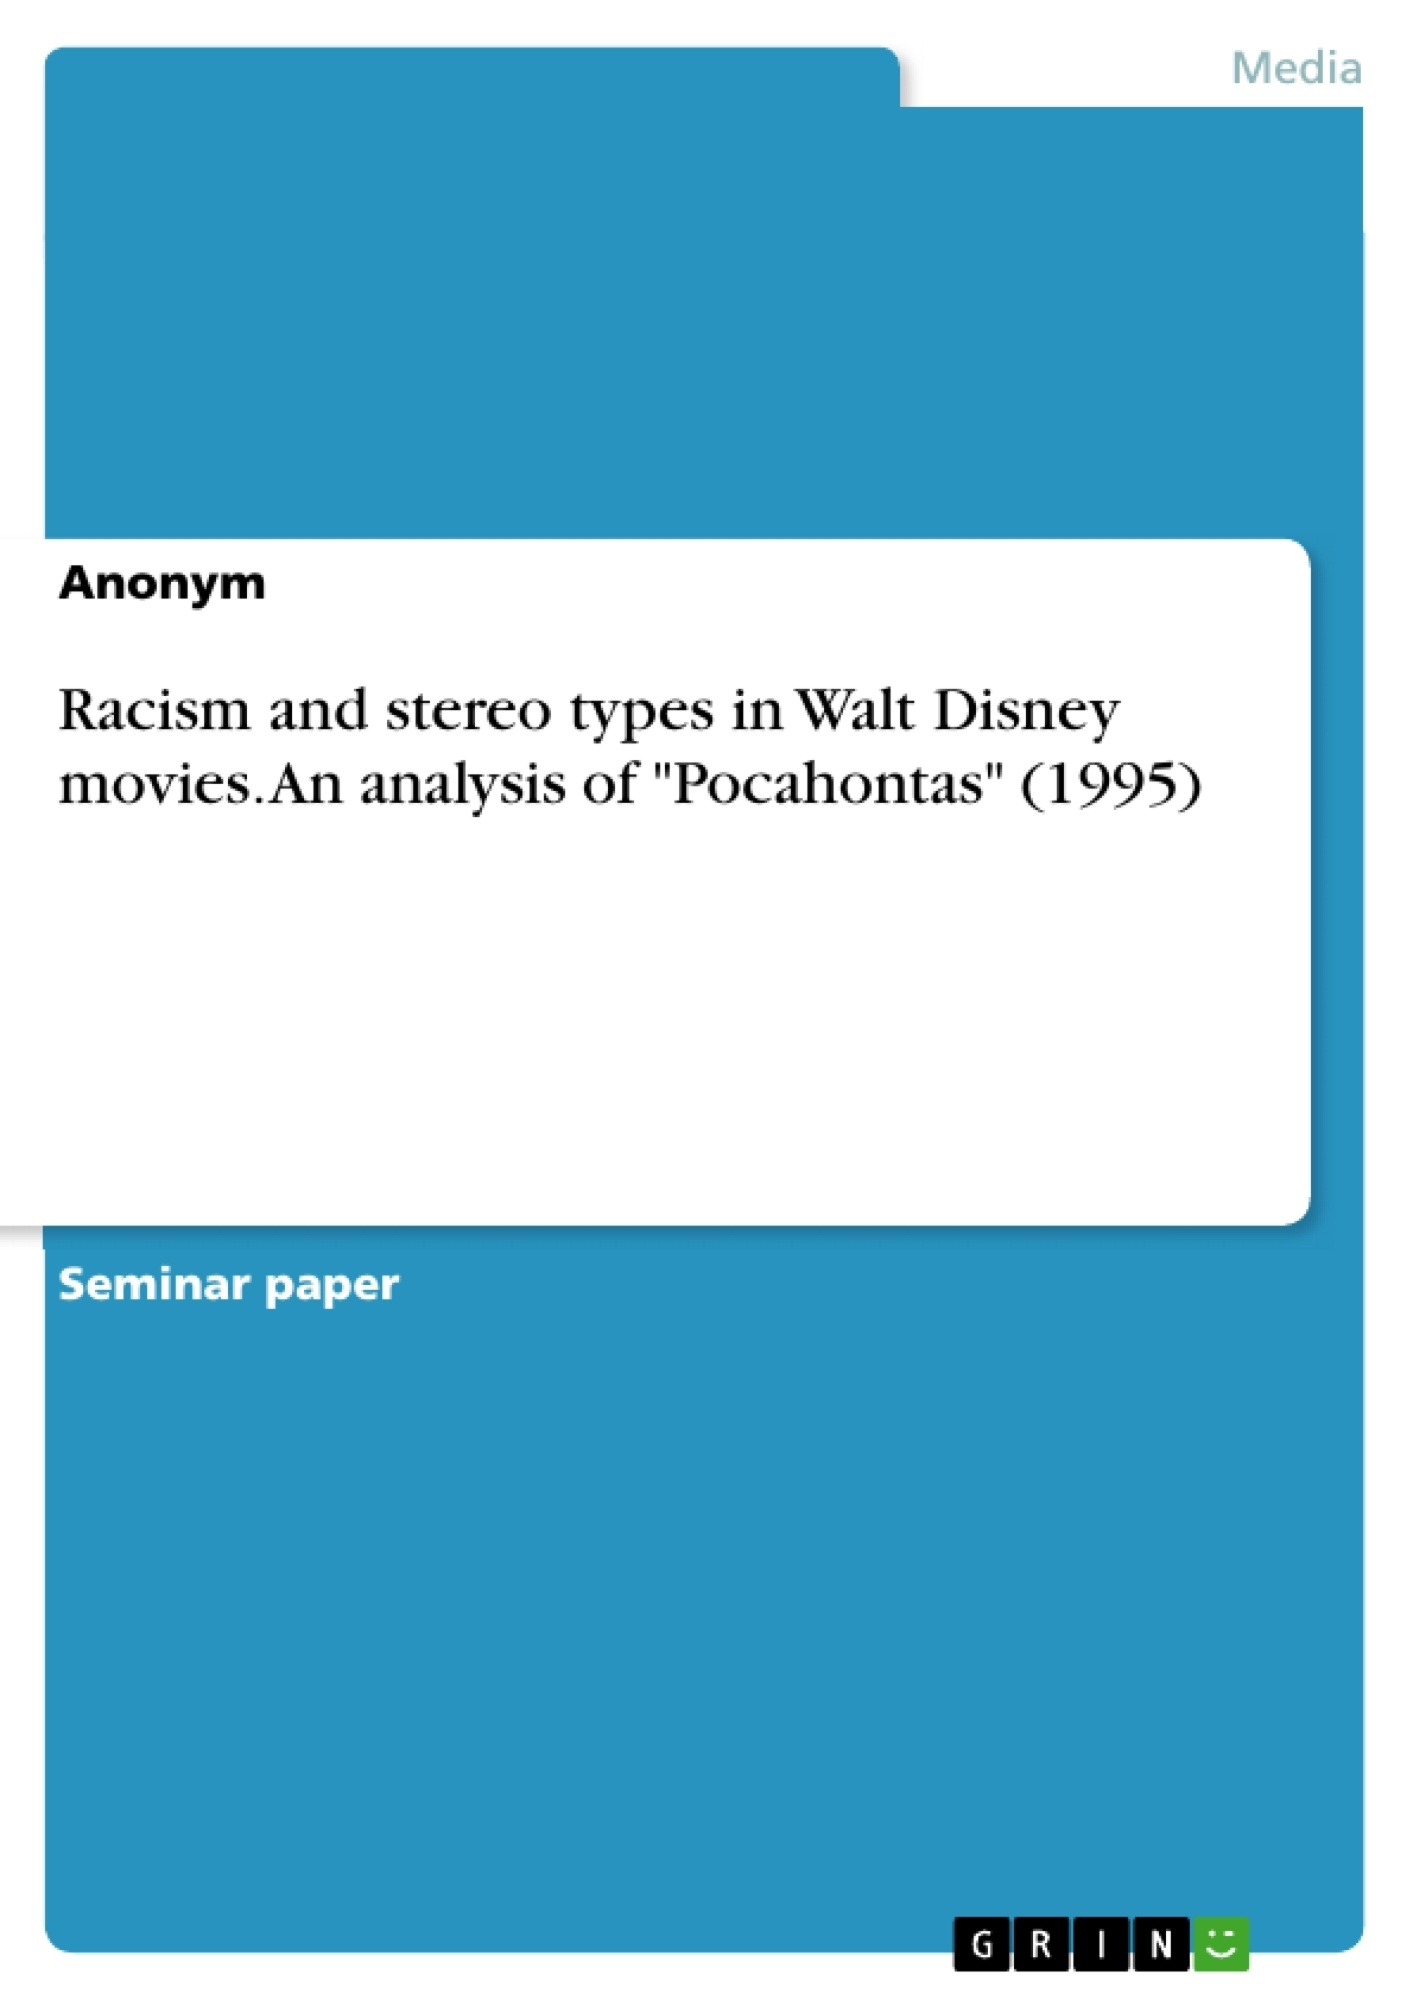 Grin Racism And Stereo Types In Walt Disney Movies An Analysis Of Pocahontas 1995